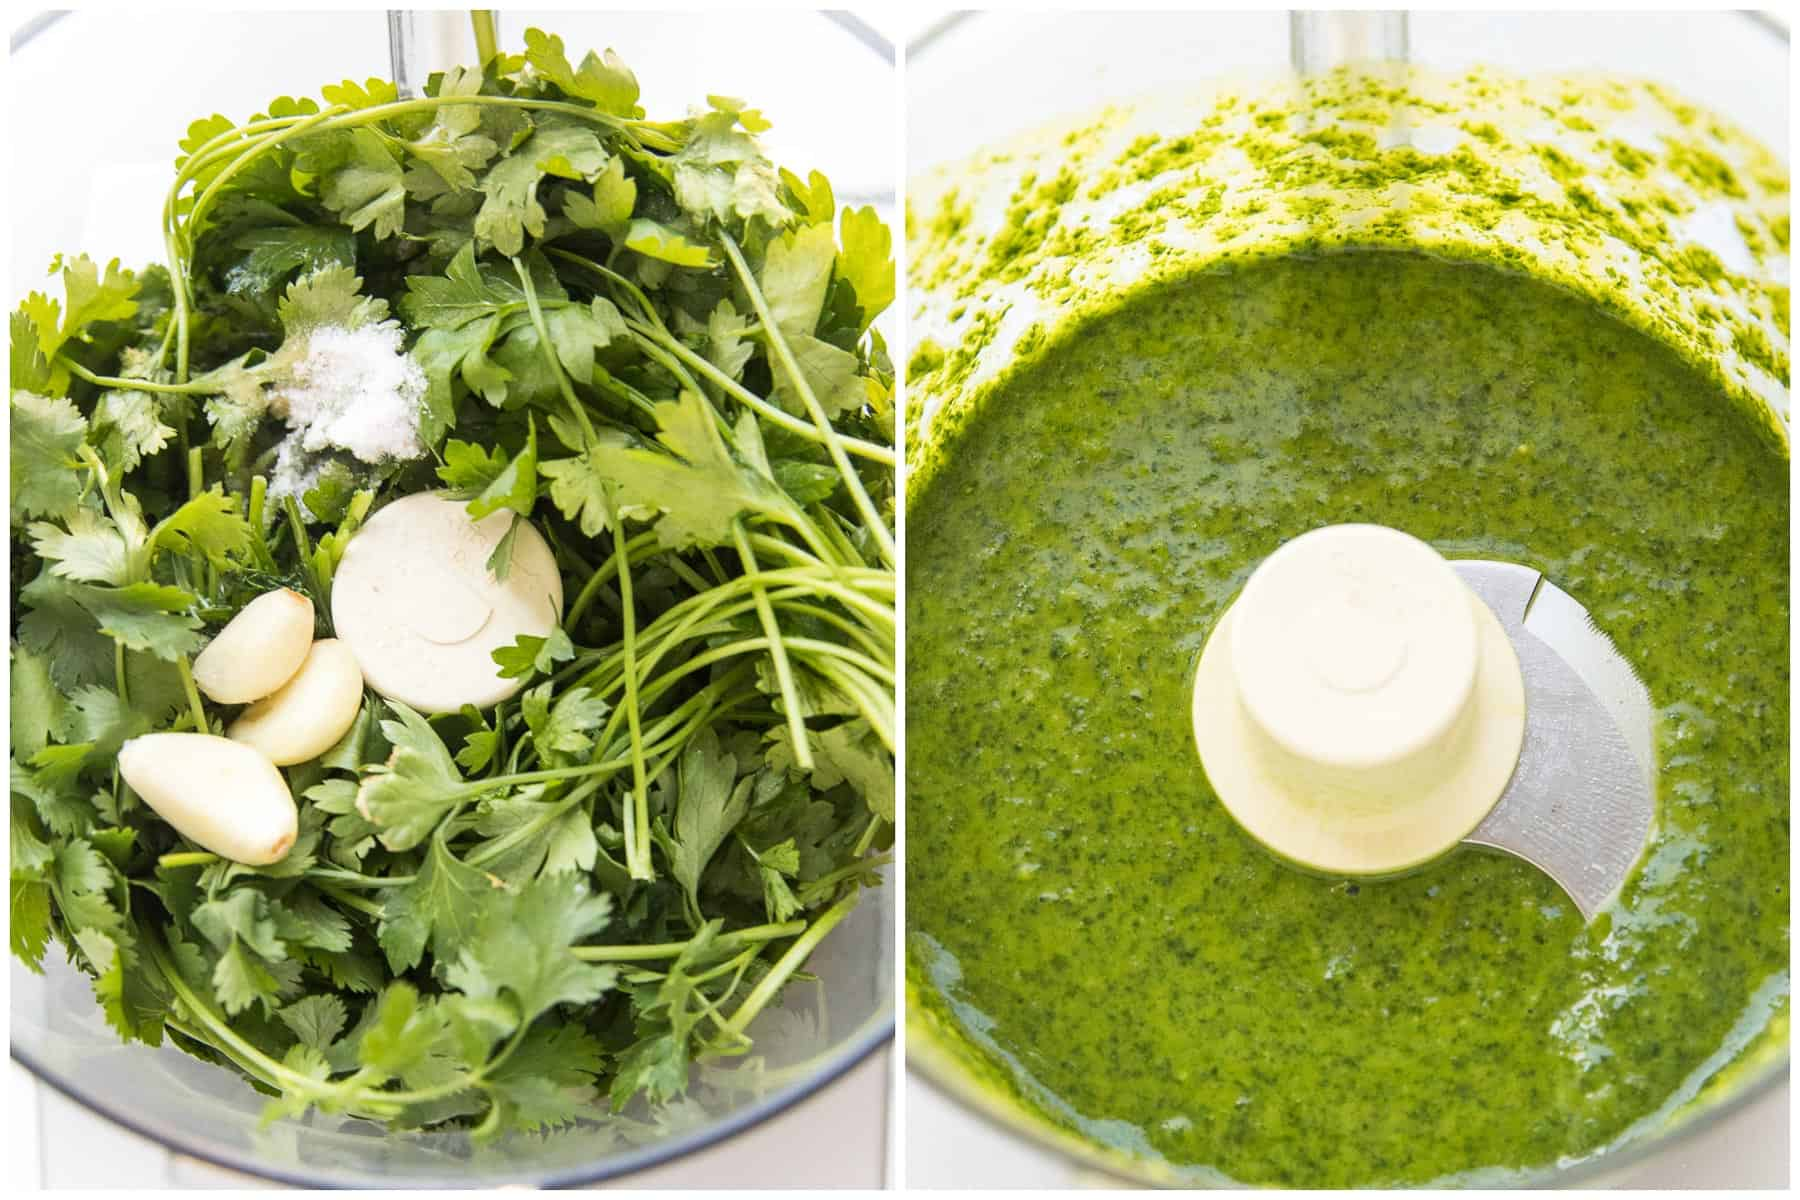 Steps of making chimichurri sauce in a food processor